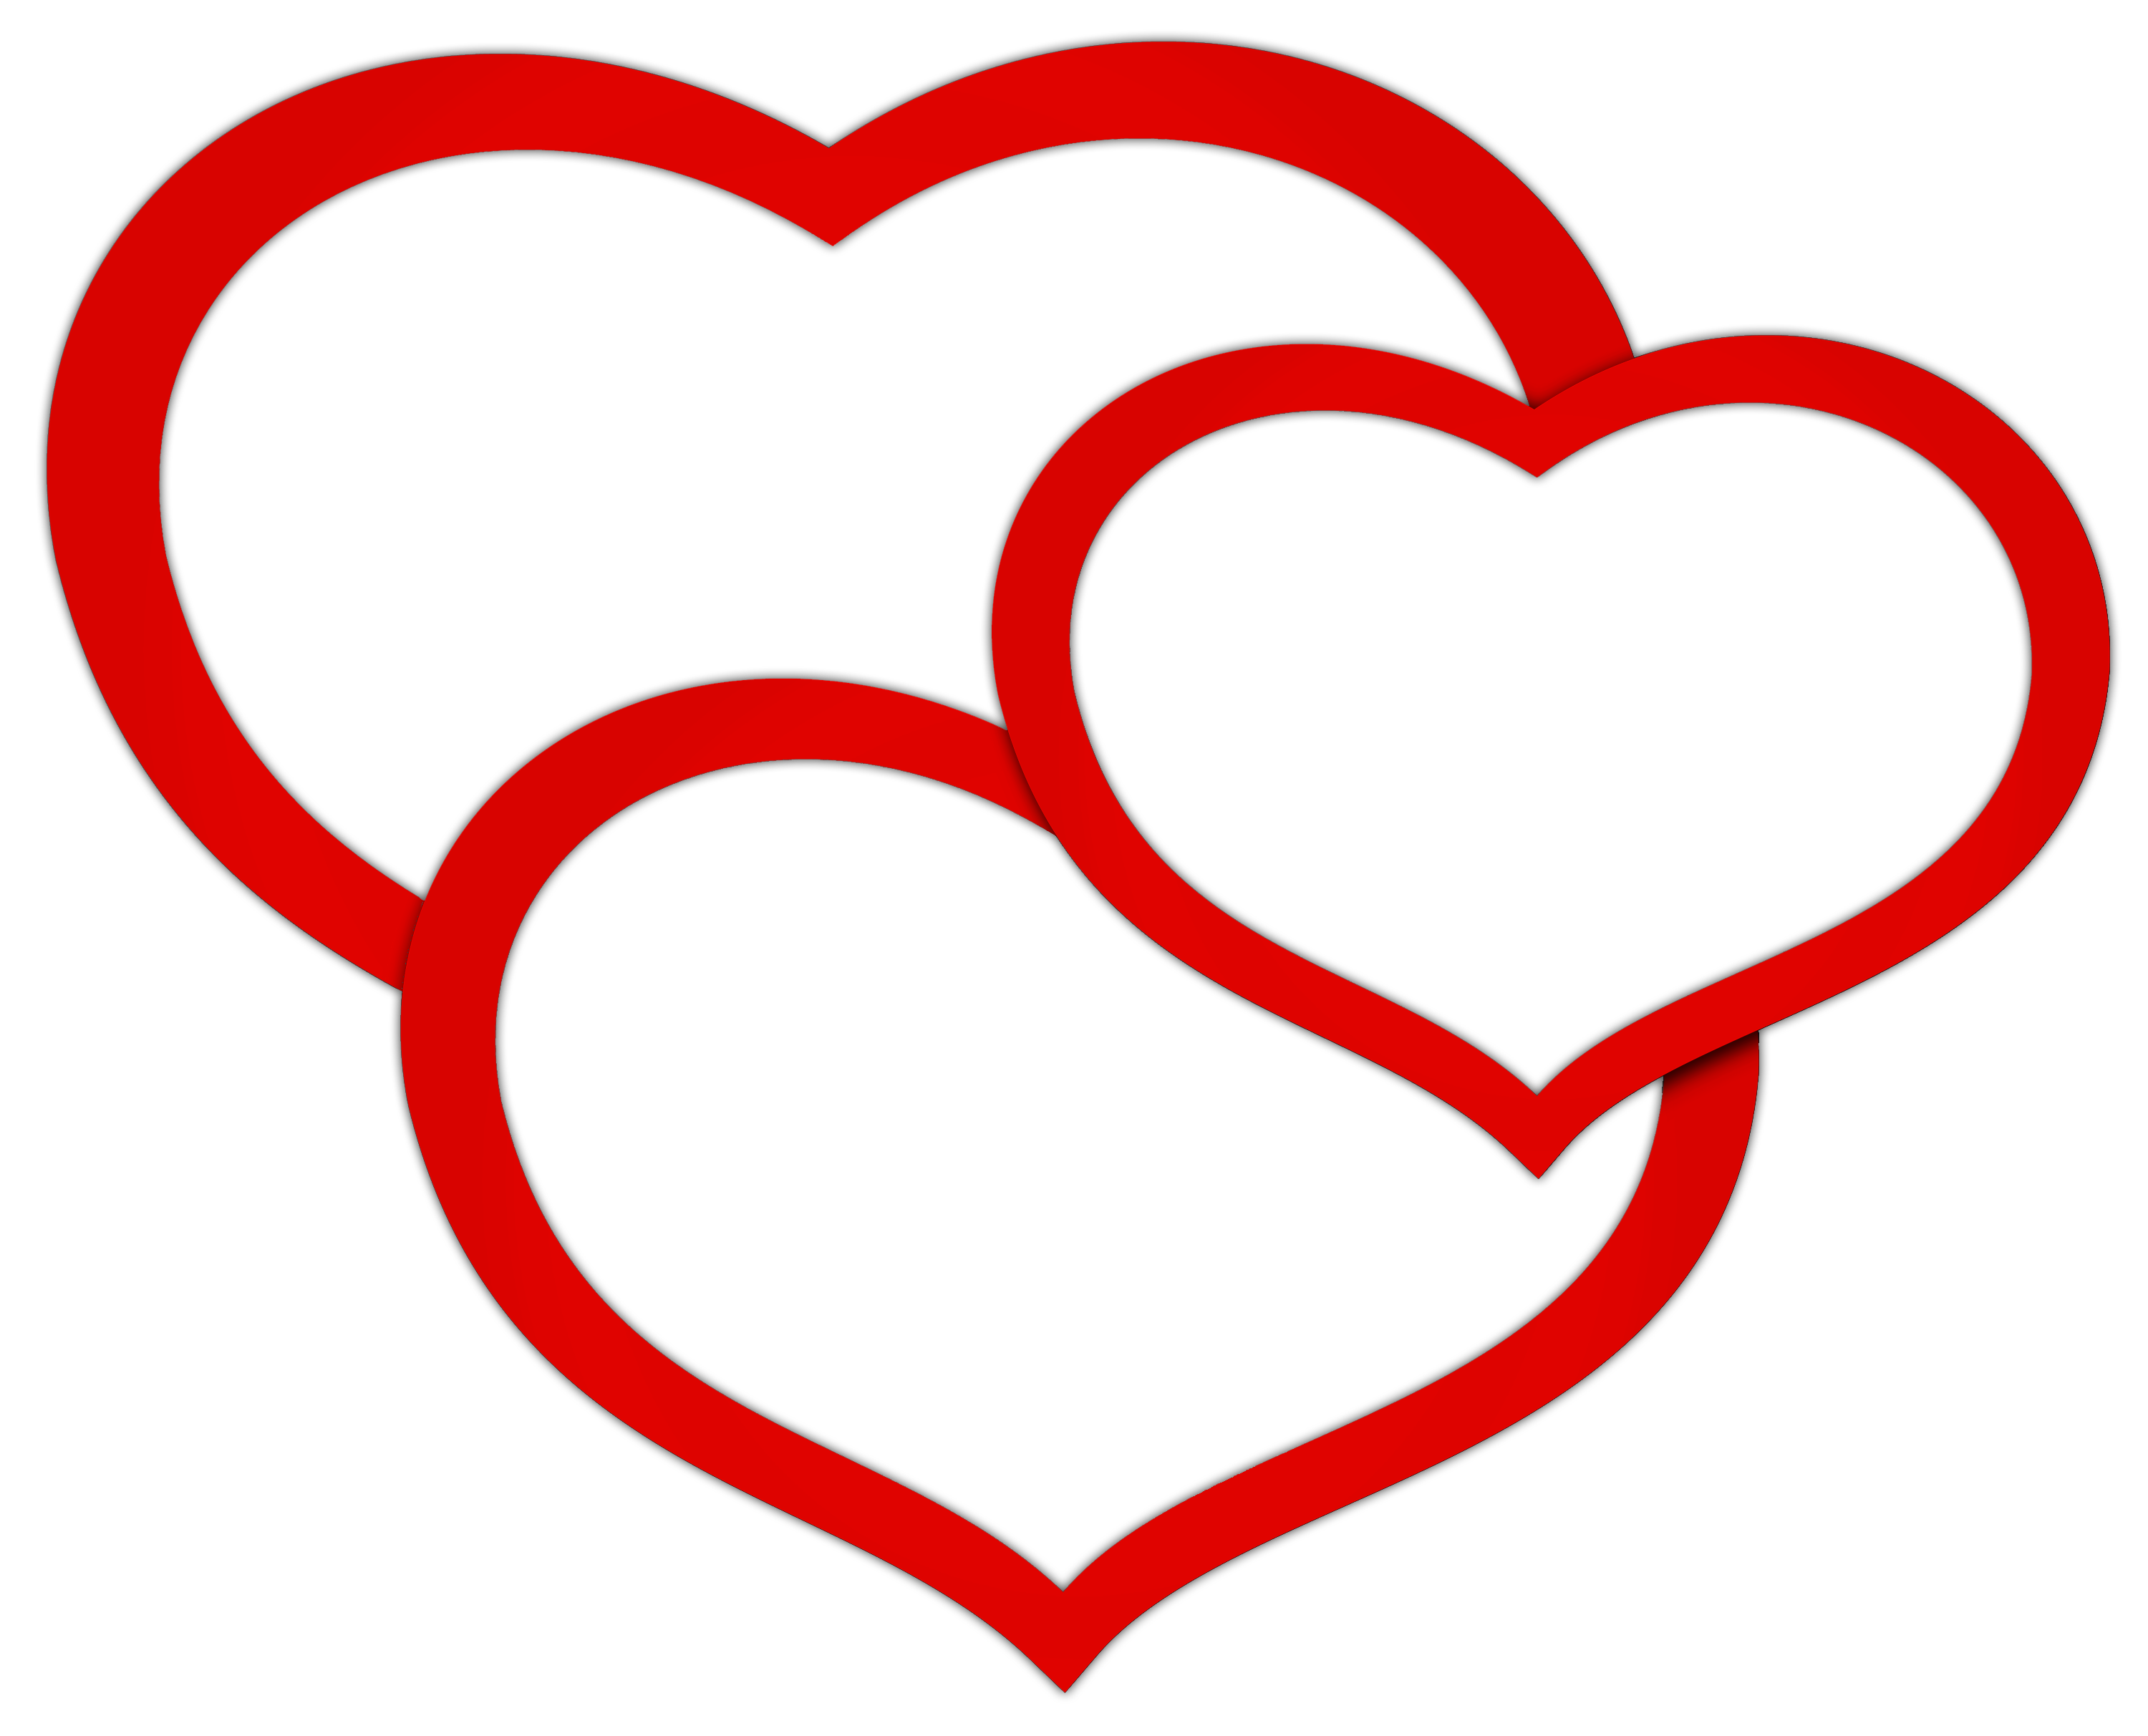 Transparent red triple hearts. Heartbeat clipart heart middle